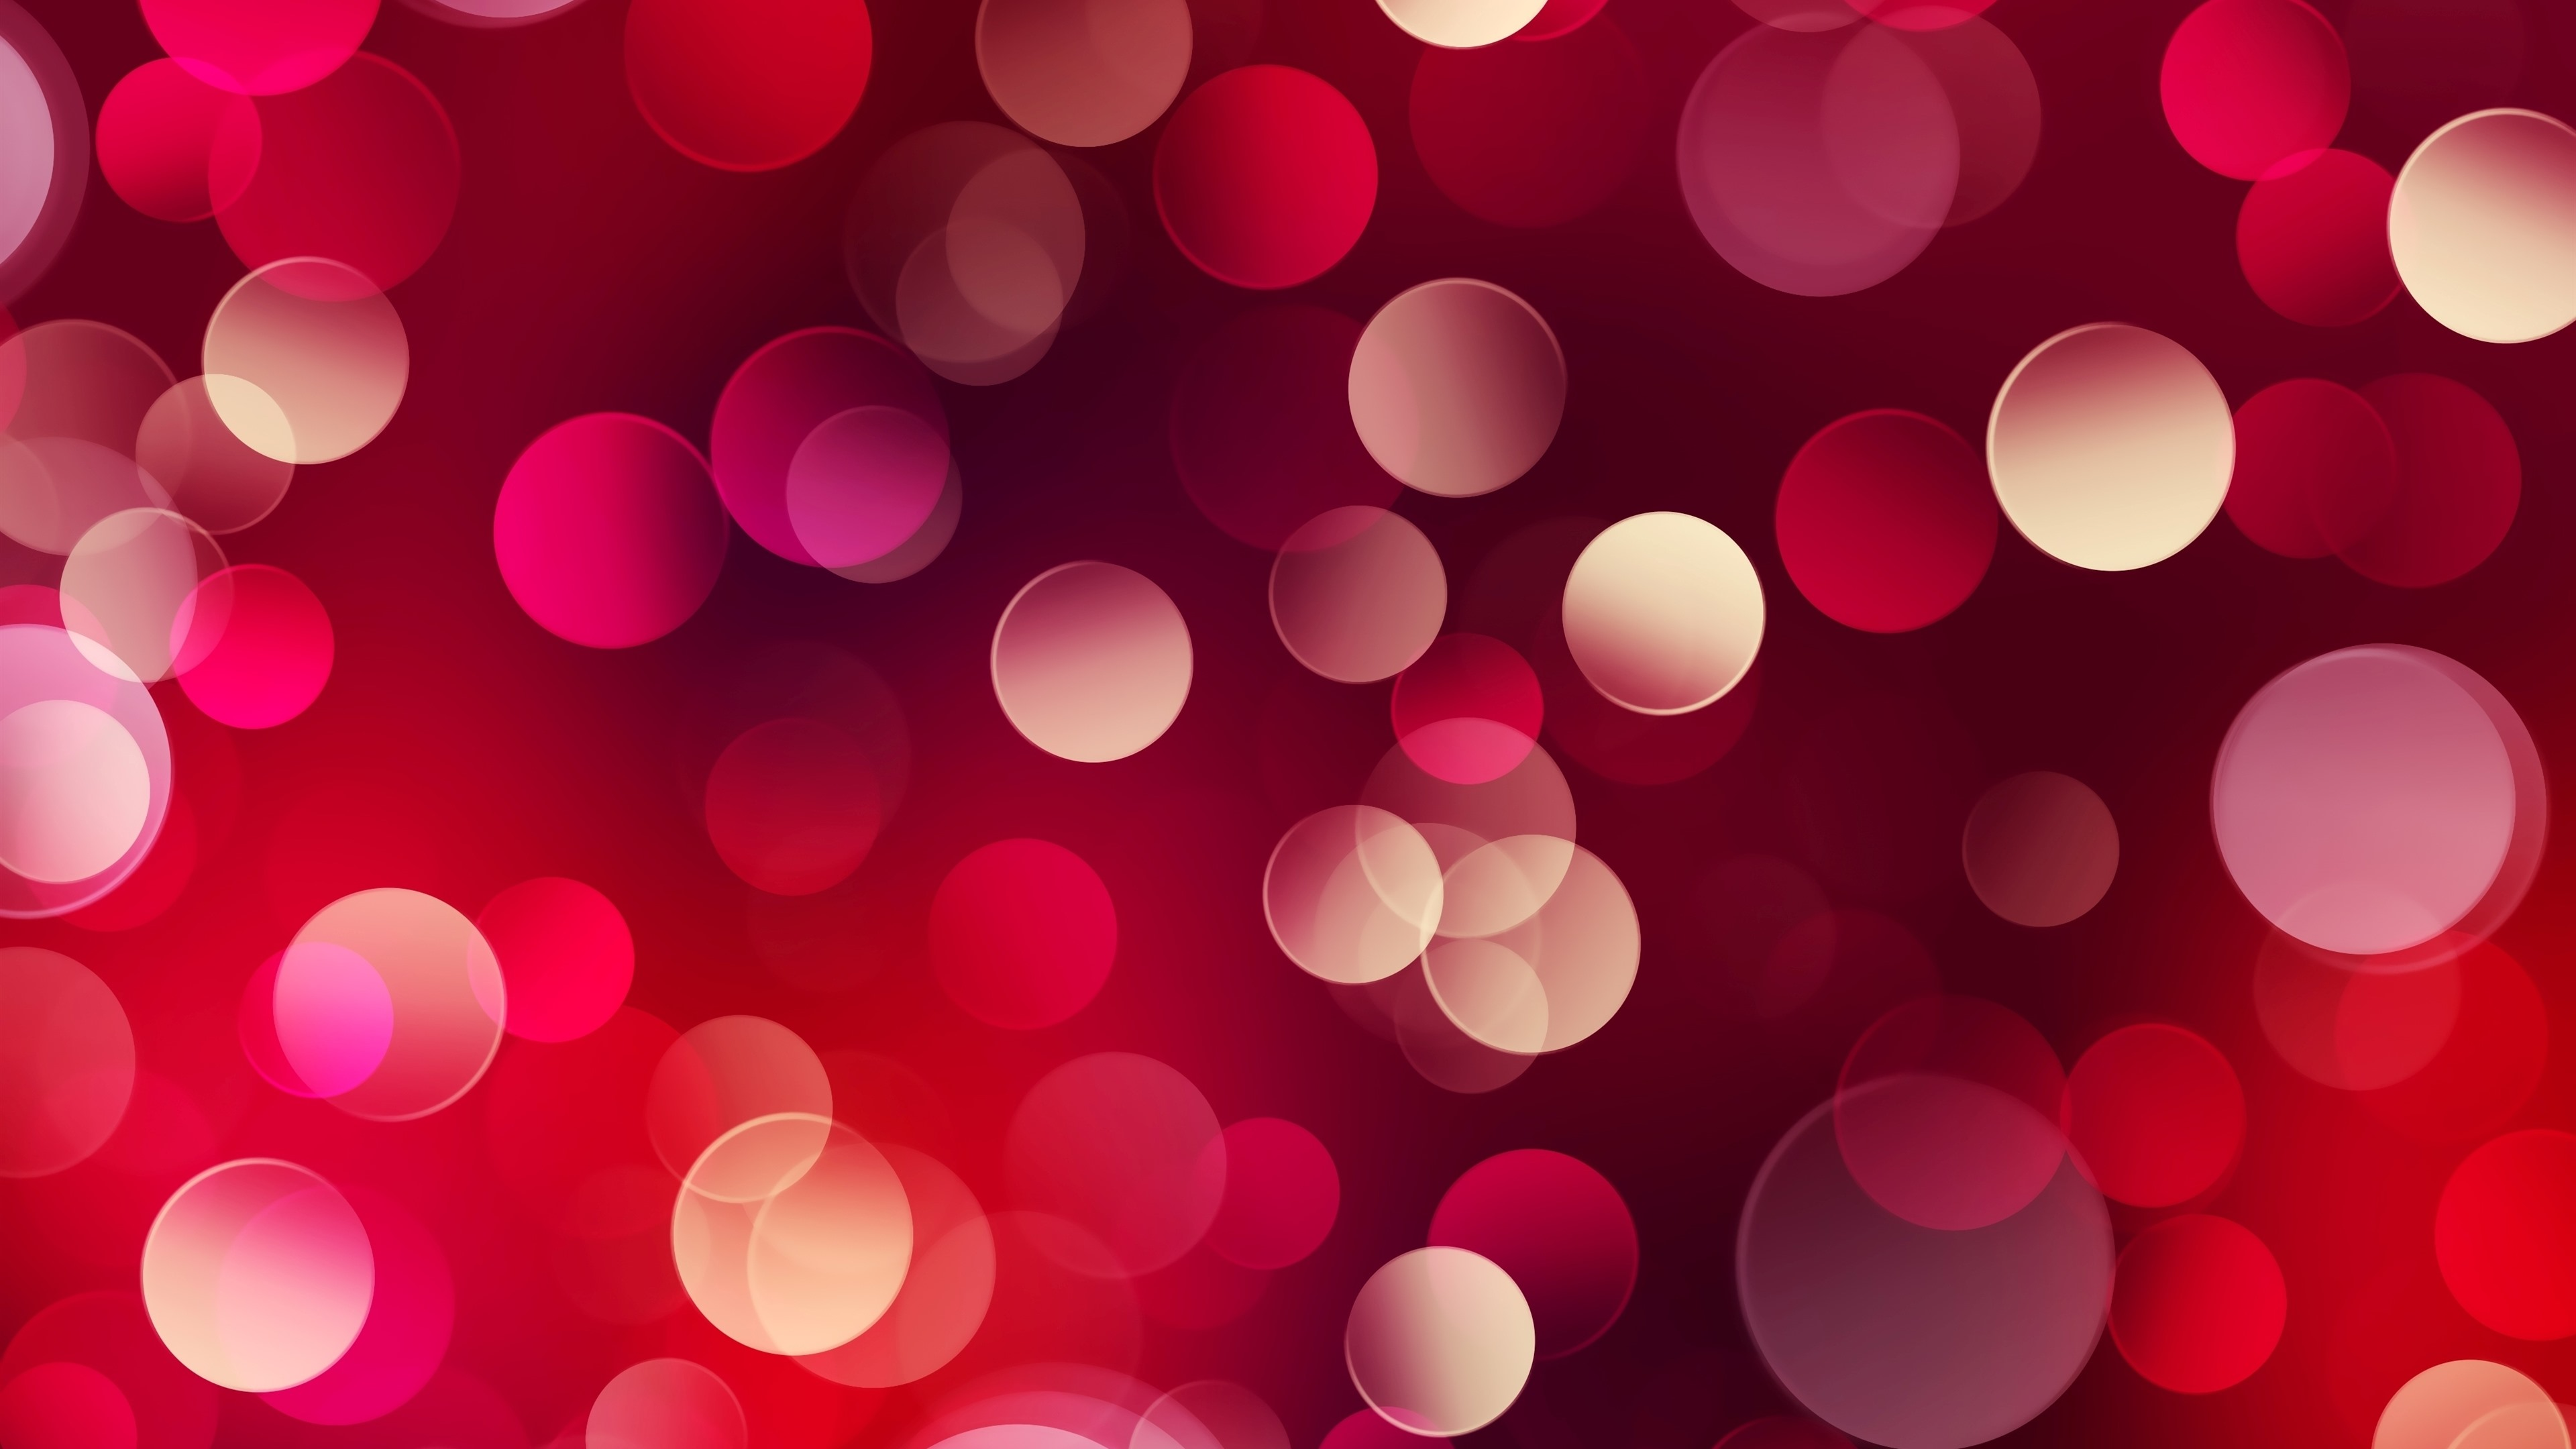 Wallpaper Red Light Circles Abstract Background 3840x2160